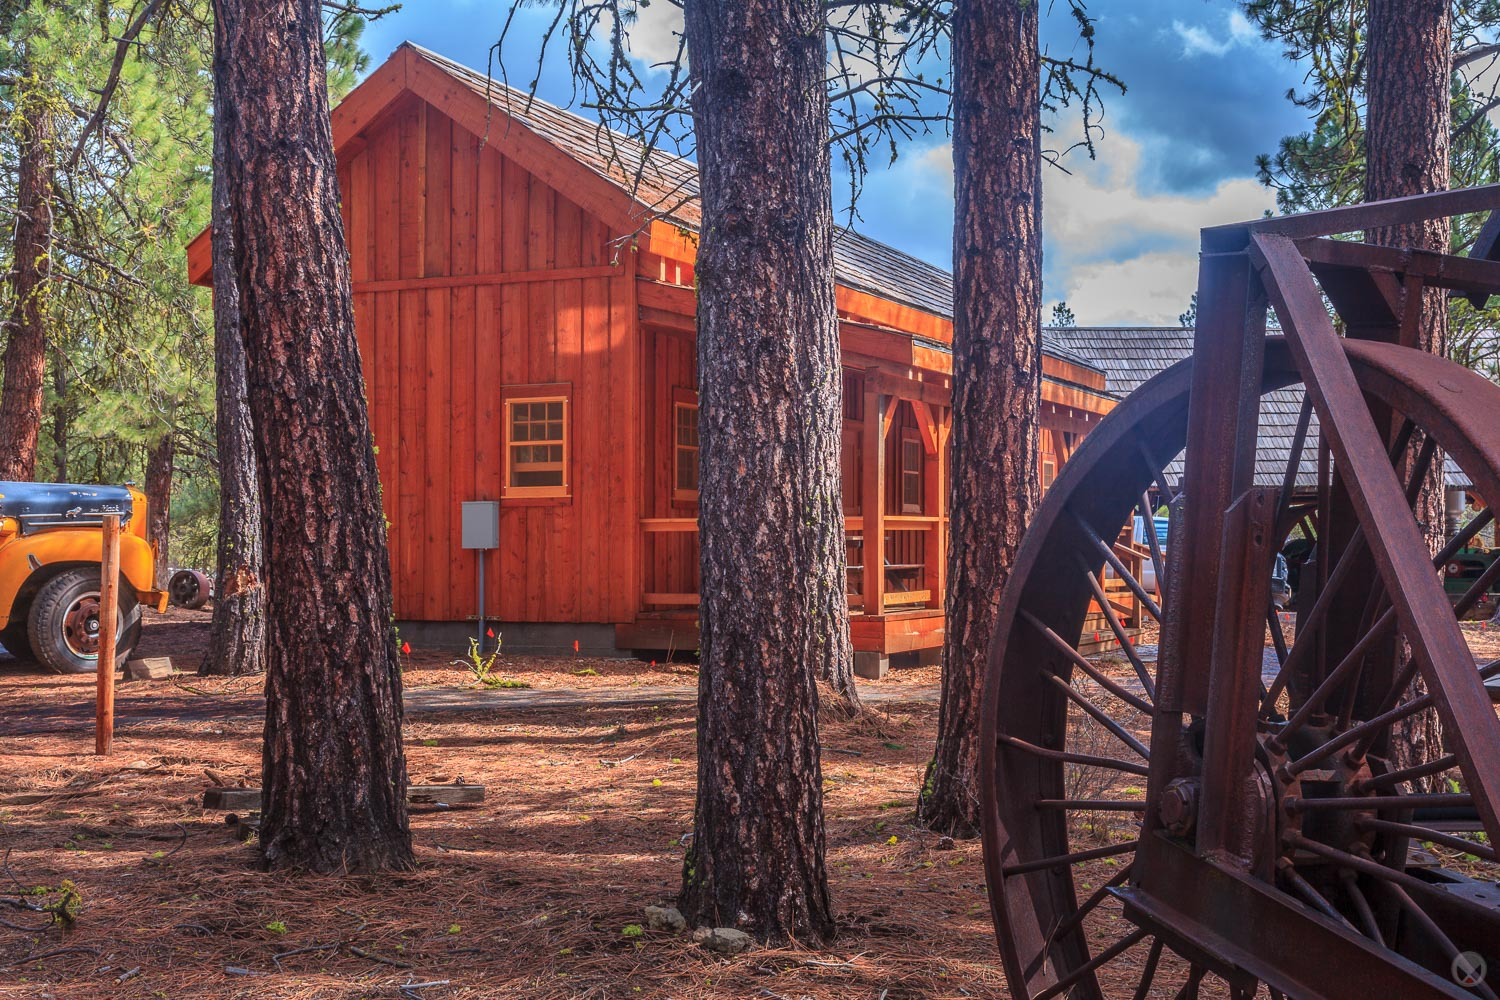 Interpretive Display Shelters & Pioneer Village Structures, Coll